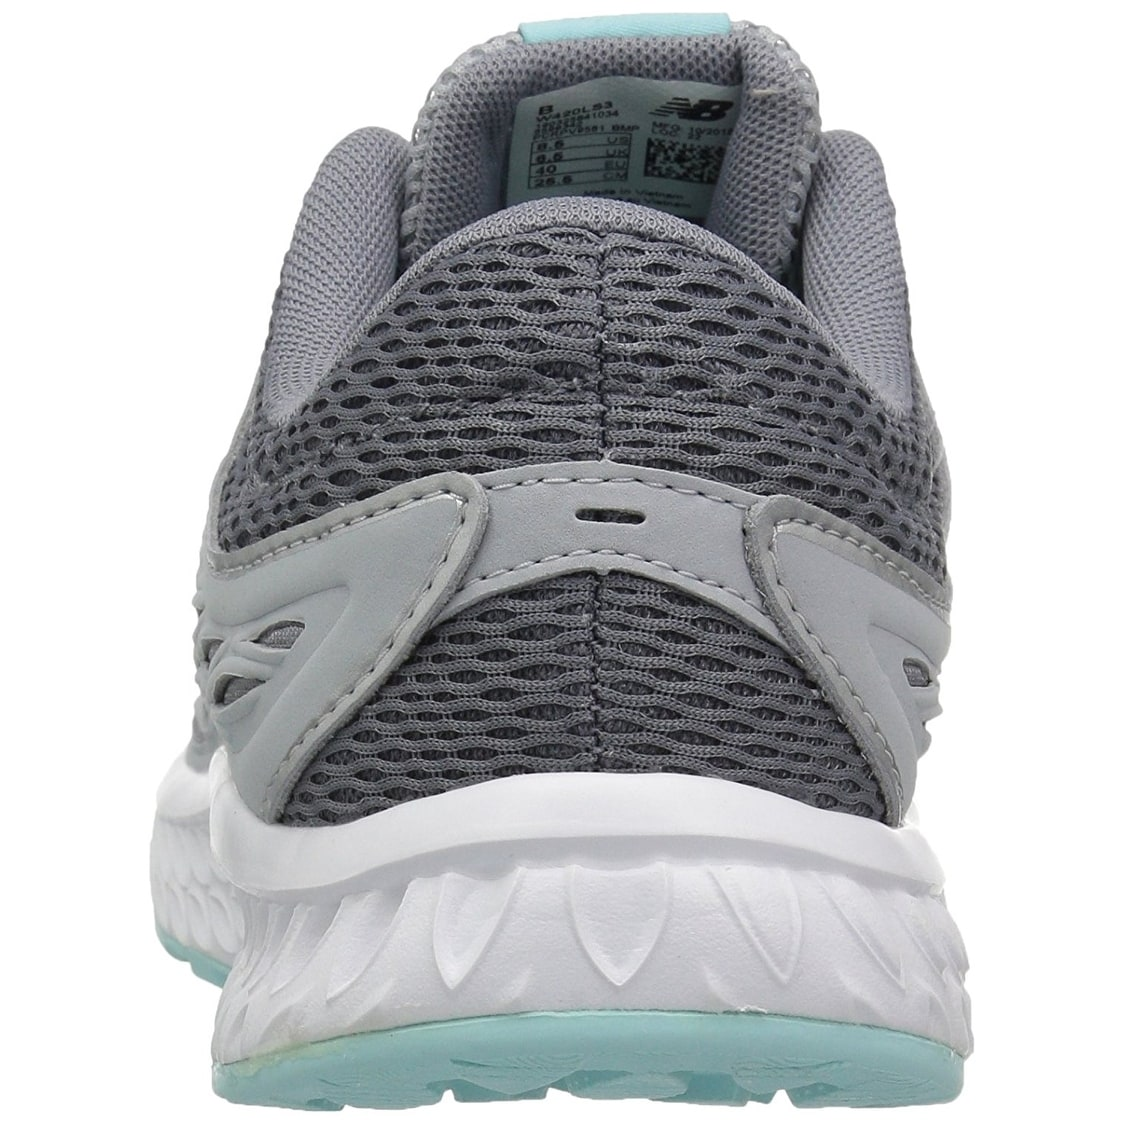 78383f4abee4 Shop New Balance Women's W420V3 Running Shoe, Silver Mink/Gunmetal/Ozone  Blue Glow - Free Shipping Today - Overstock - 18276109